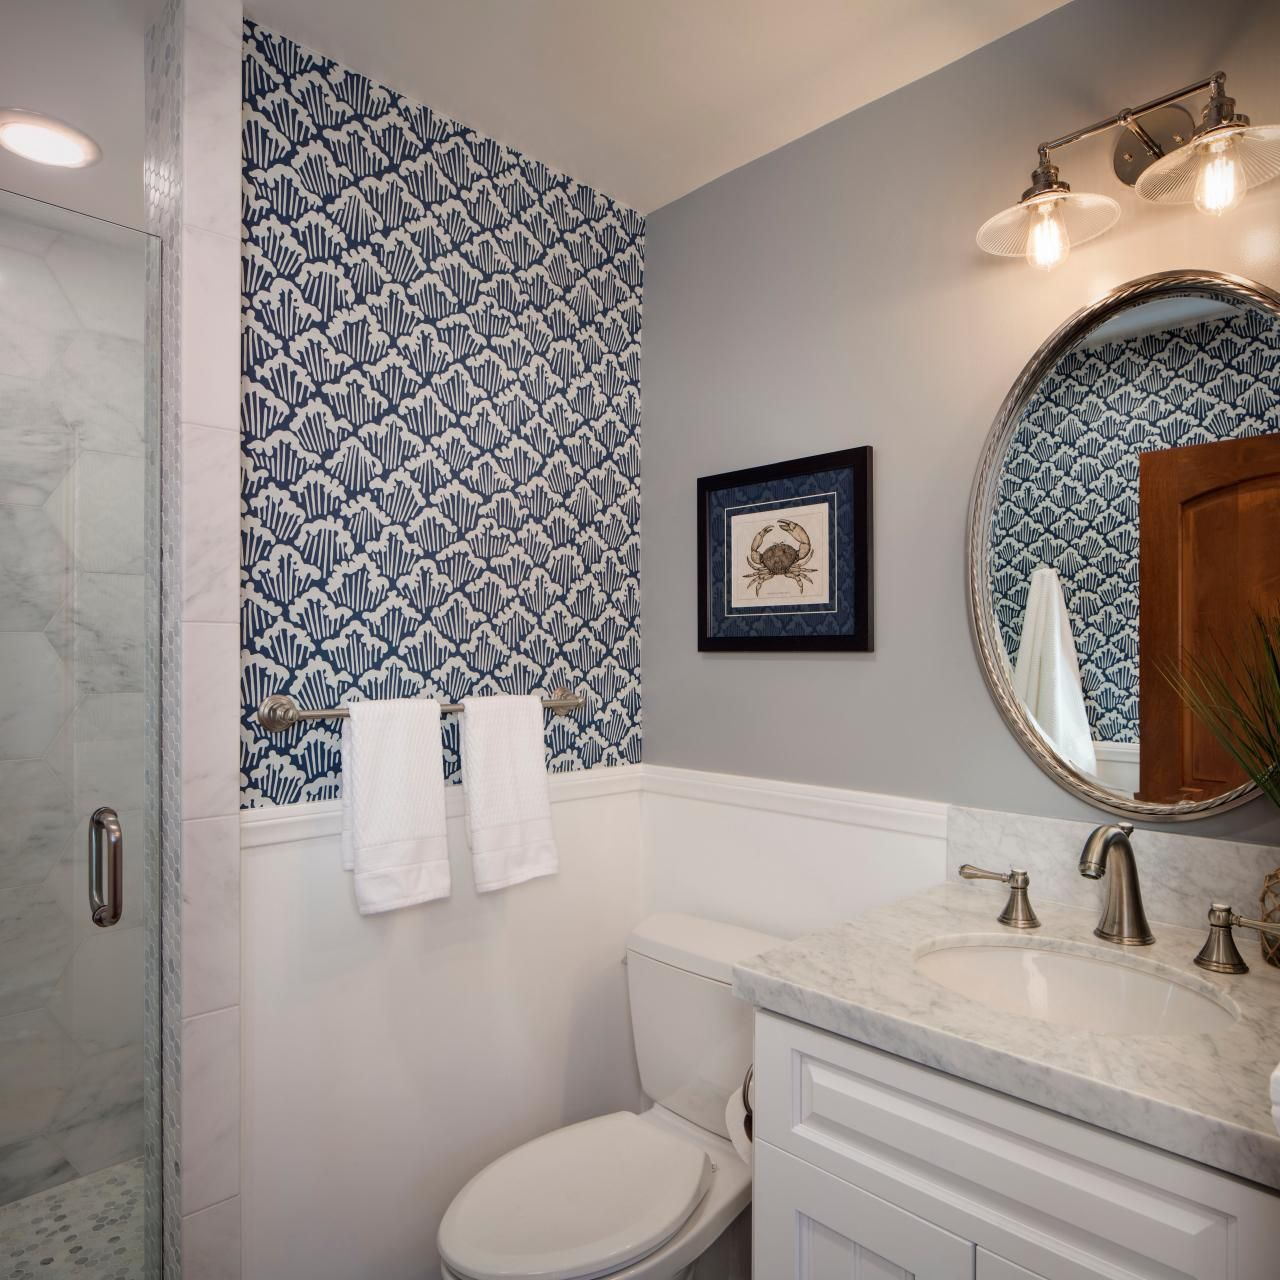 photos of remodeled bathrooms%0A Cresting waves make a compelling graphic backdrop in this petite bathroom   Keeping the wallpaper only in select areas of the room keeps the pattern  from